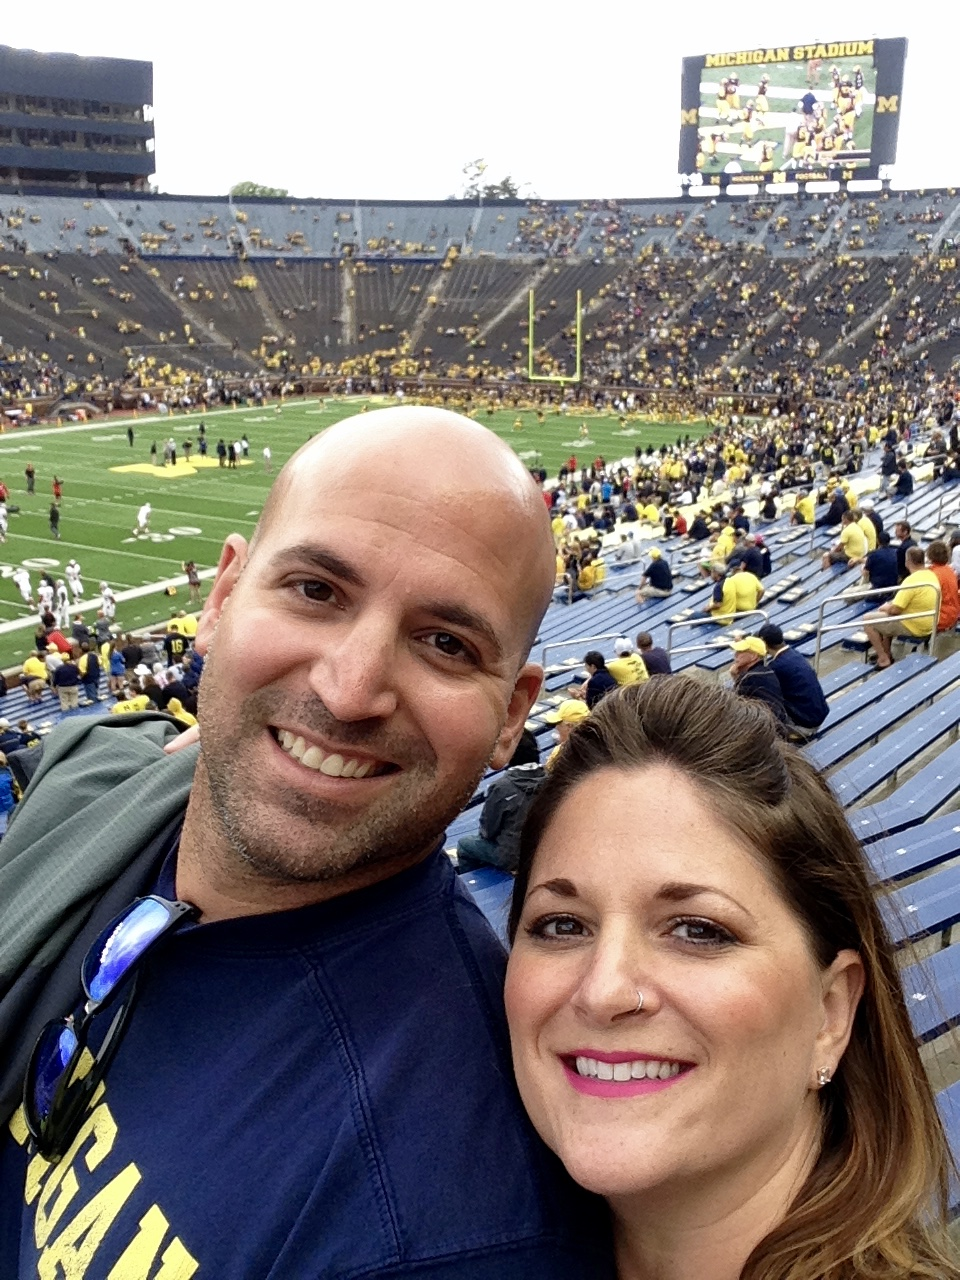 Go Blue! Cheering on the Wolverines at the Big House last September. Happy to be here with my man. Not happy about fall.